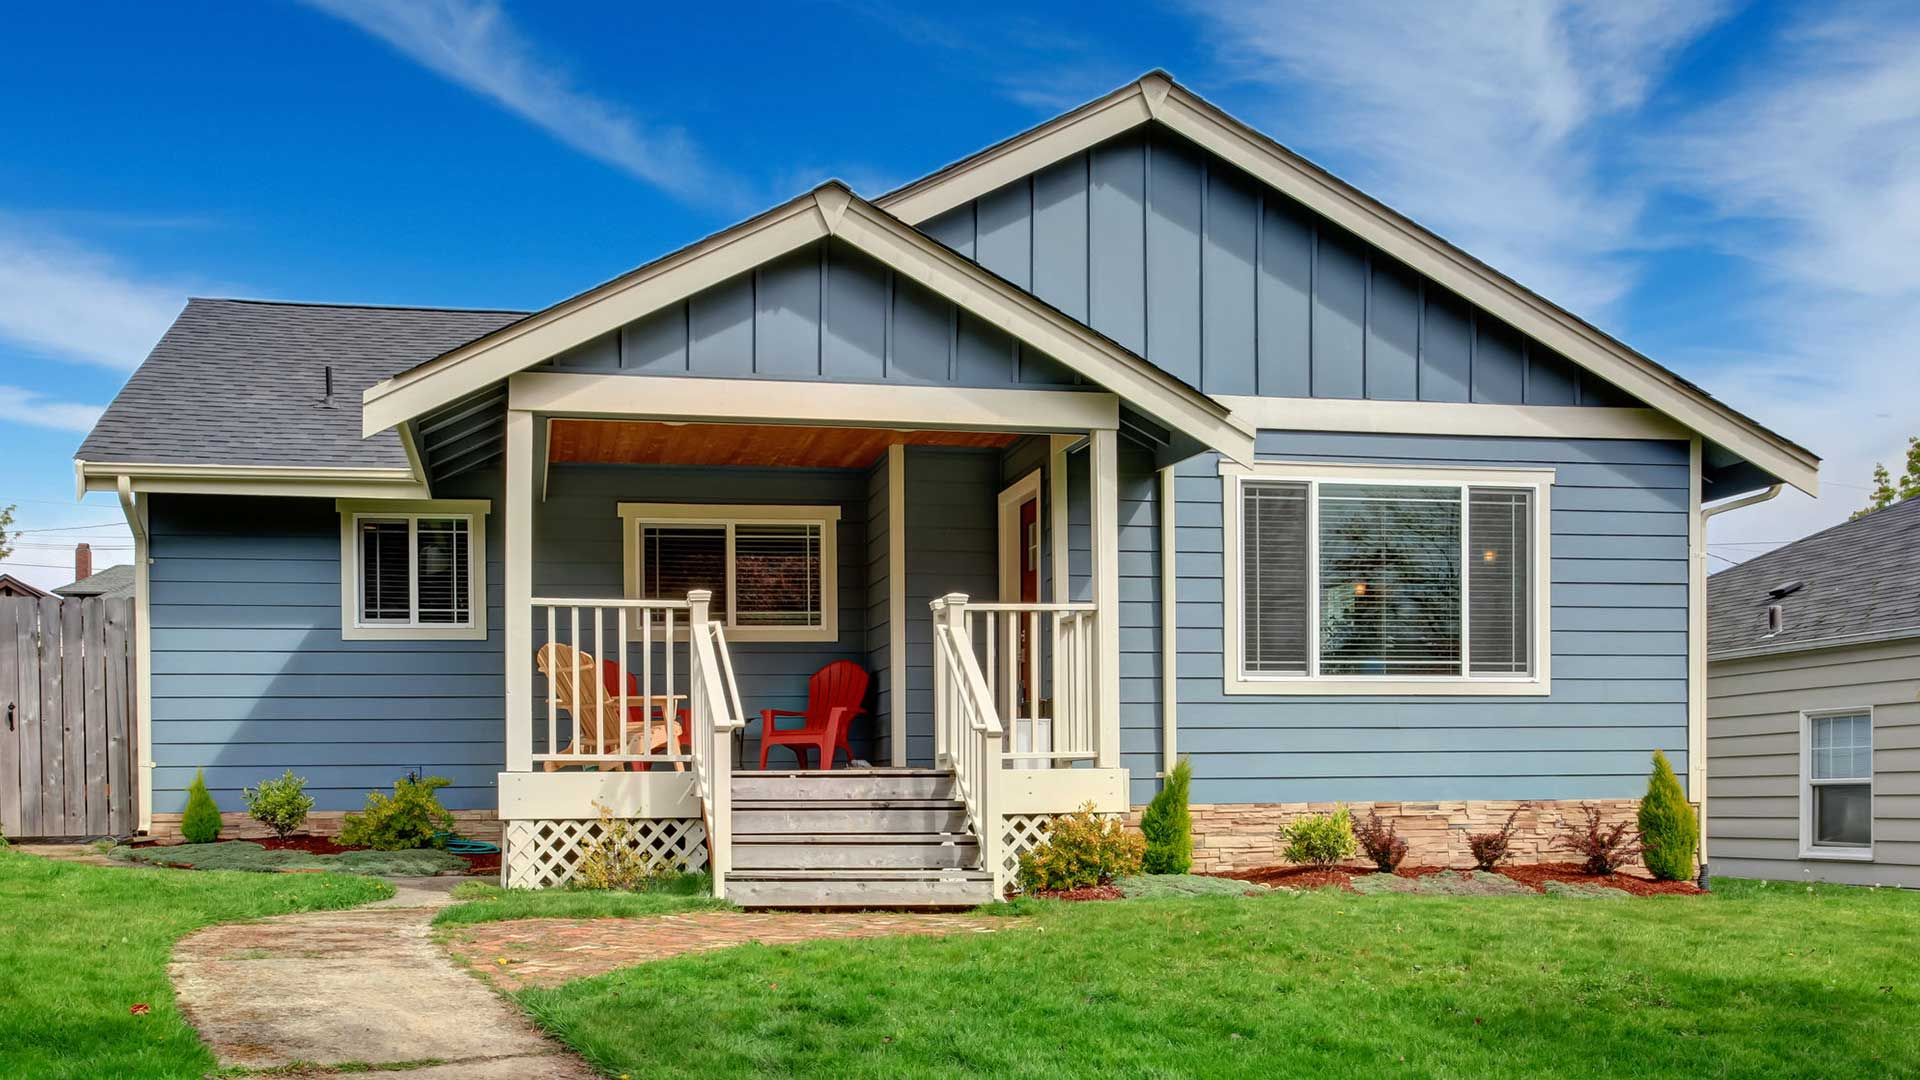 Va Minimum Property Requirements Mprs For Va Home Loans 2021 The Ultimate Guide Mortgage Rates Mortgage News And Strategy The Mortgage Reports